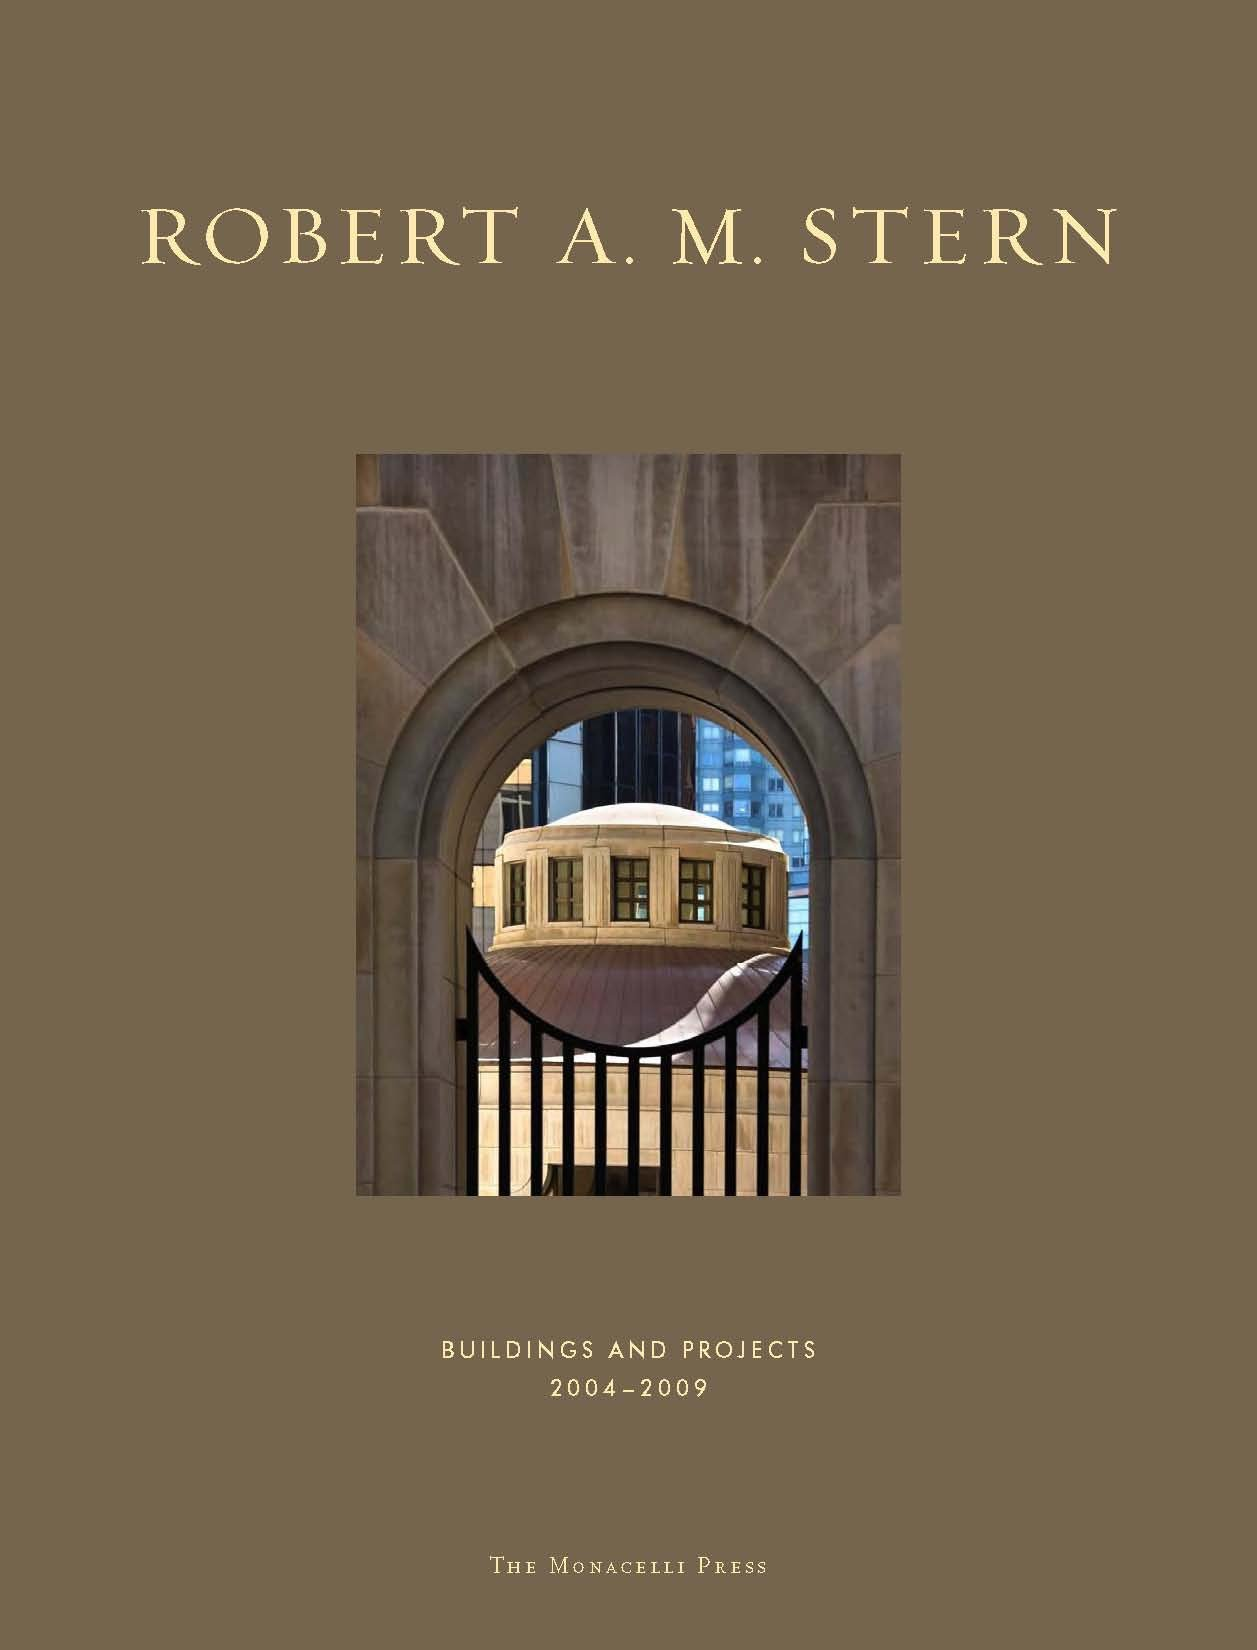 Download Robert A. M. Stern: Buildings & Projects 2004-2009 ebook